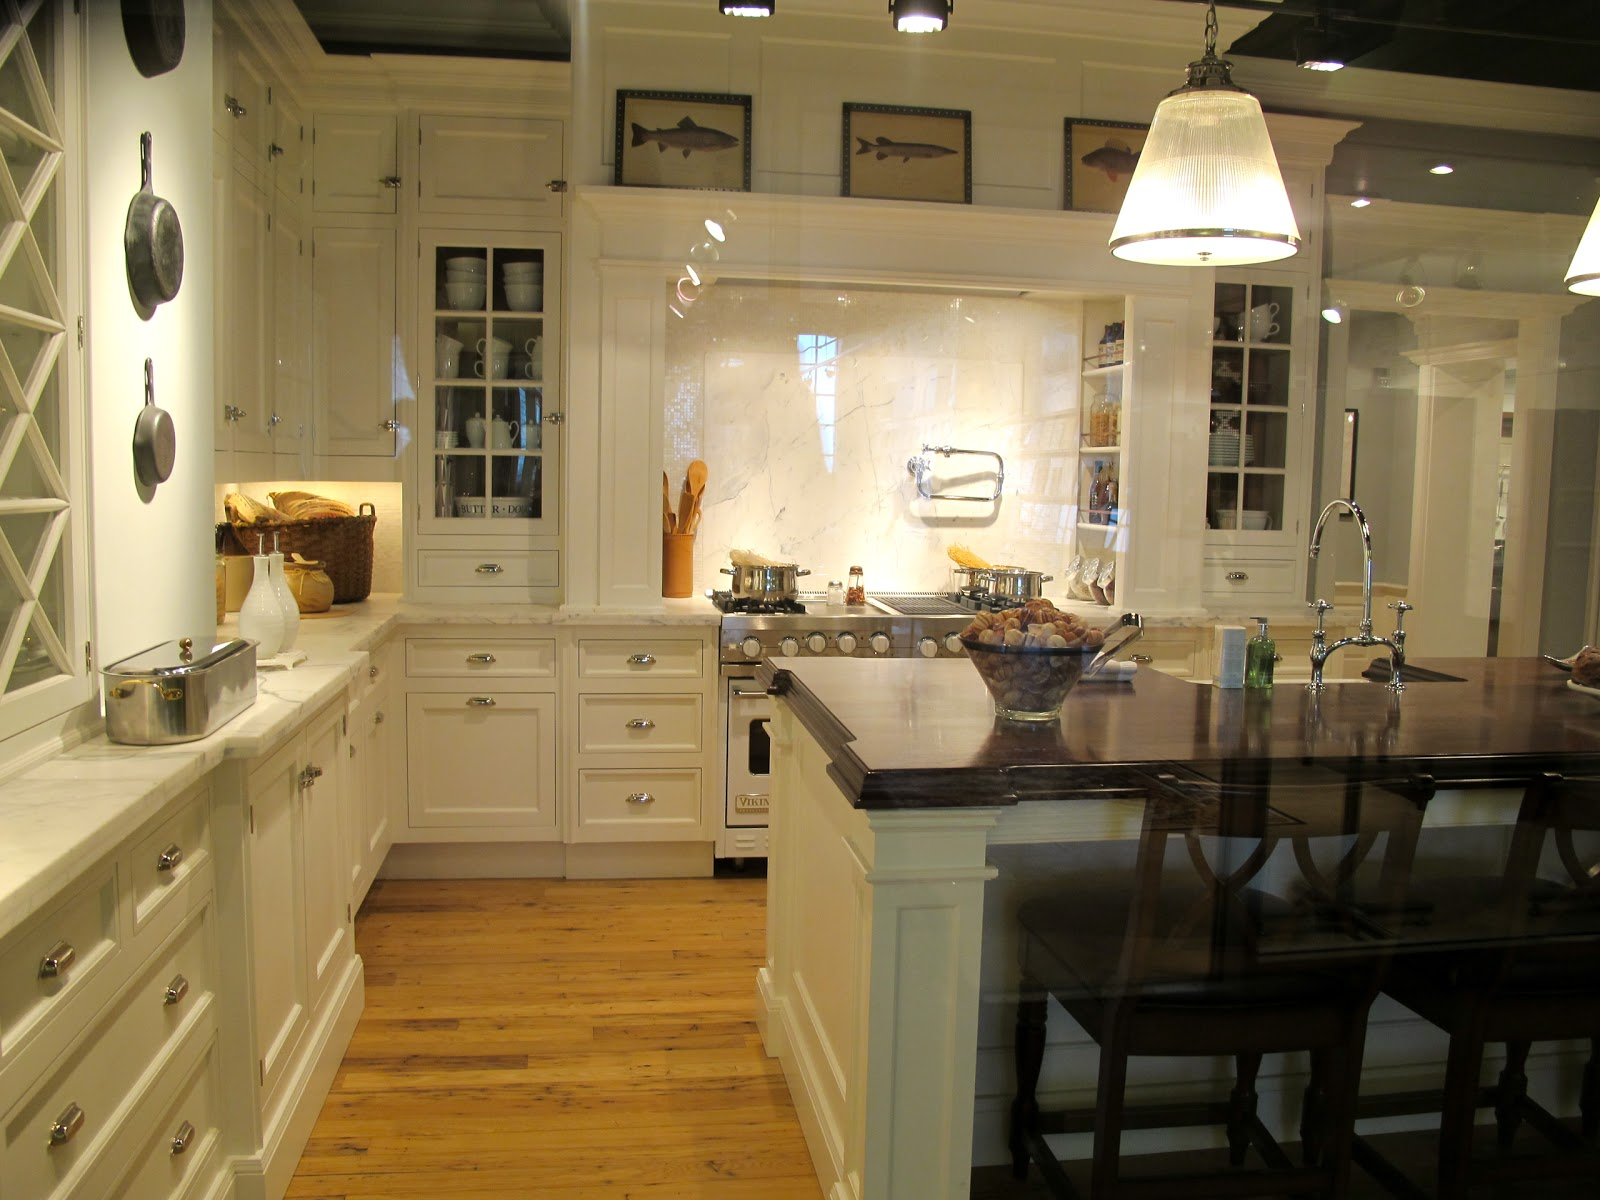 Kitchens | The Most Amazing Kitchens | Kitchen Inspiration For Classic